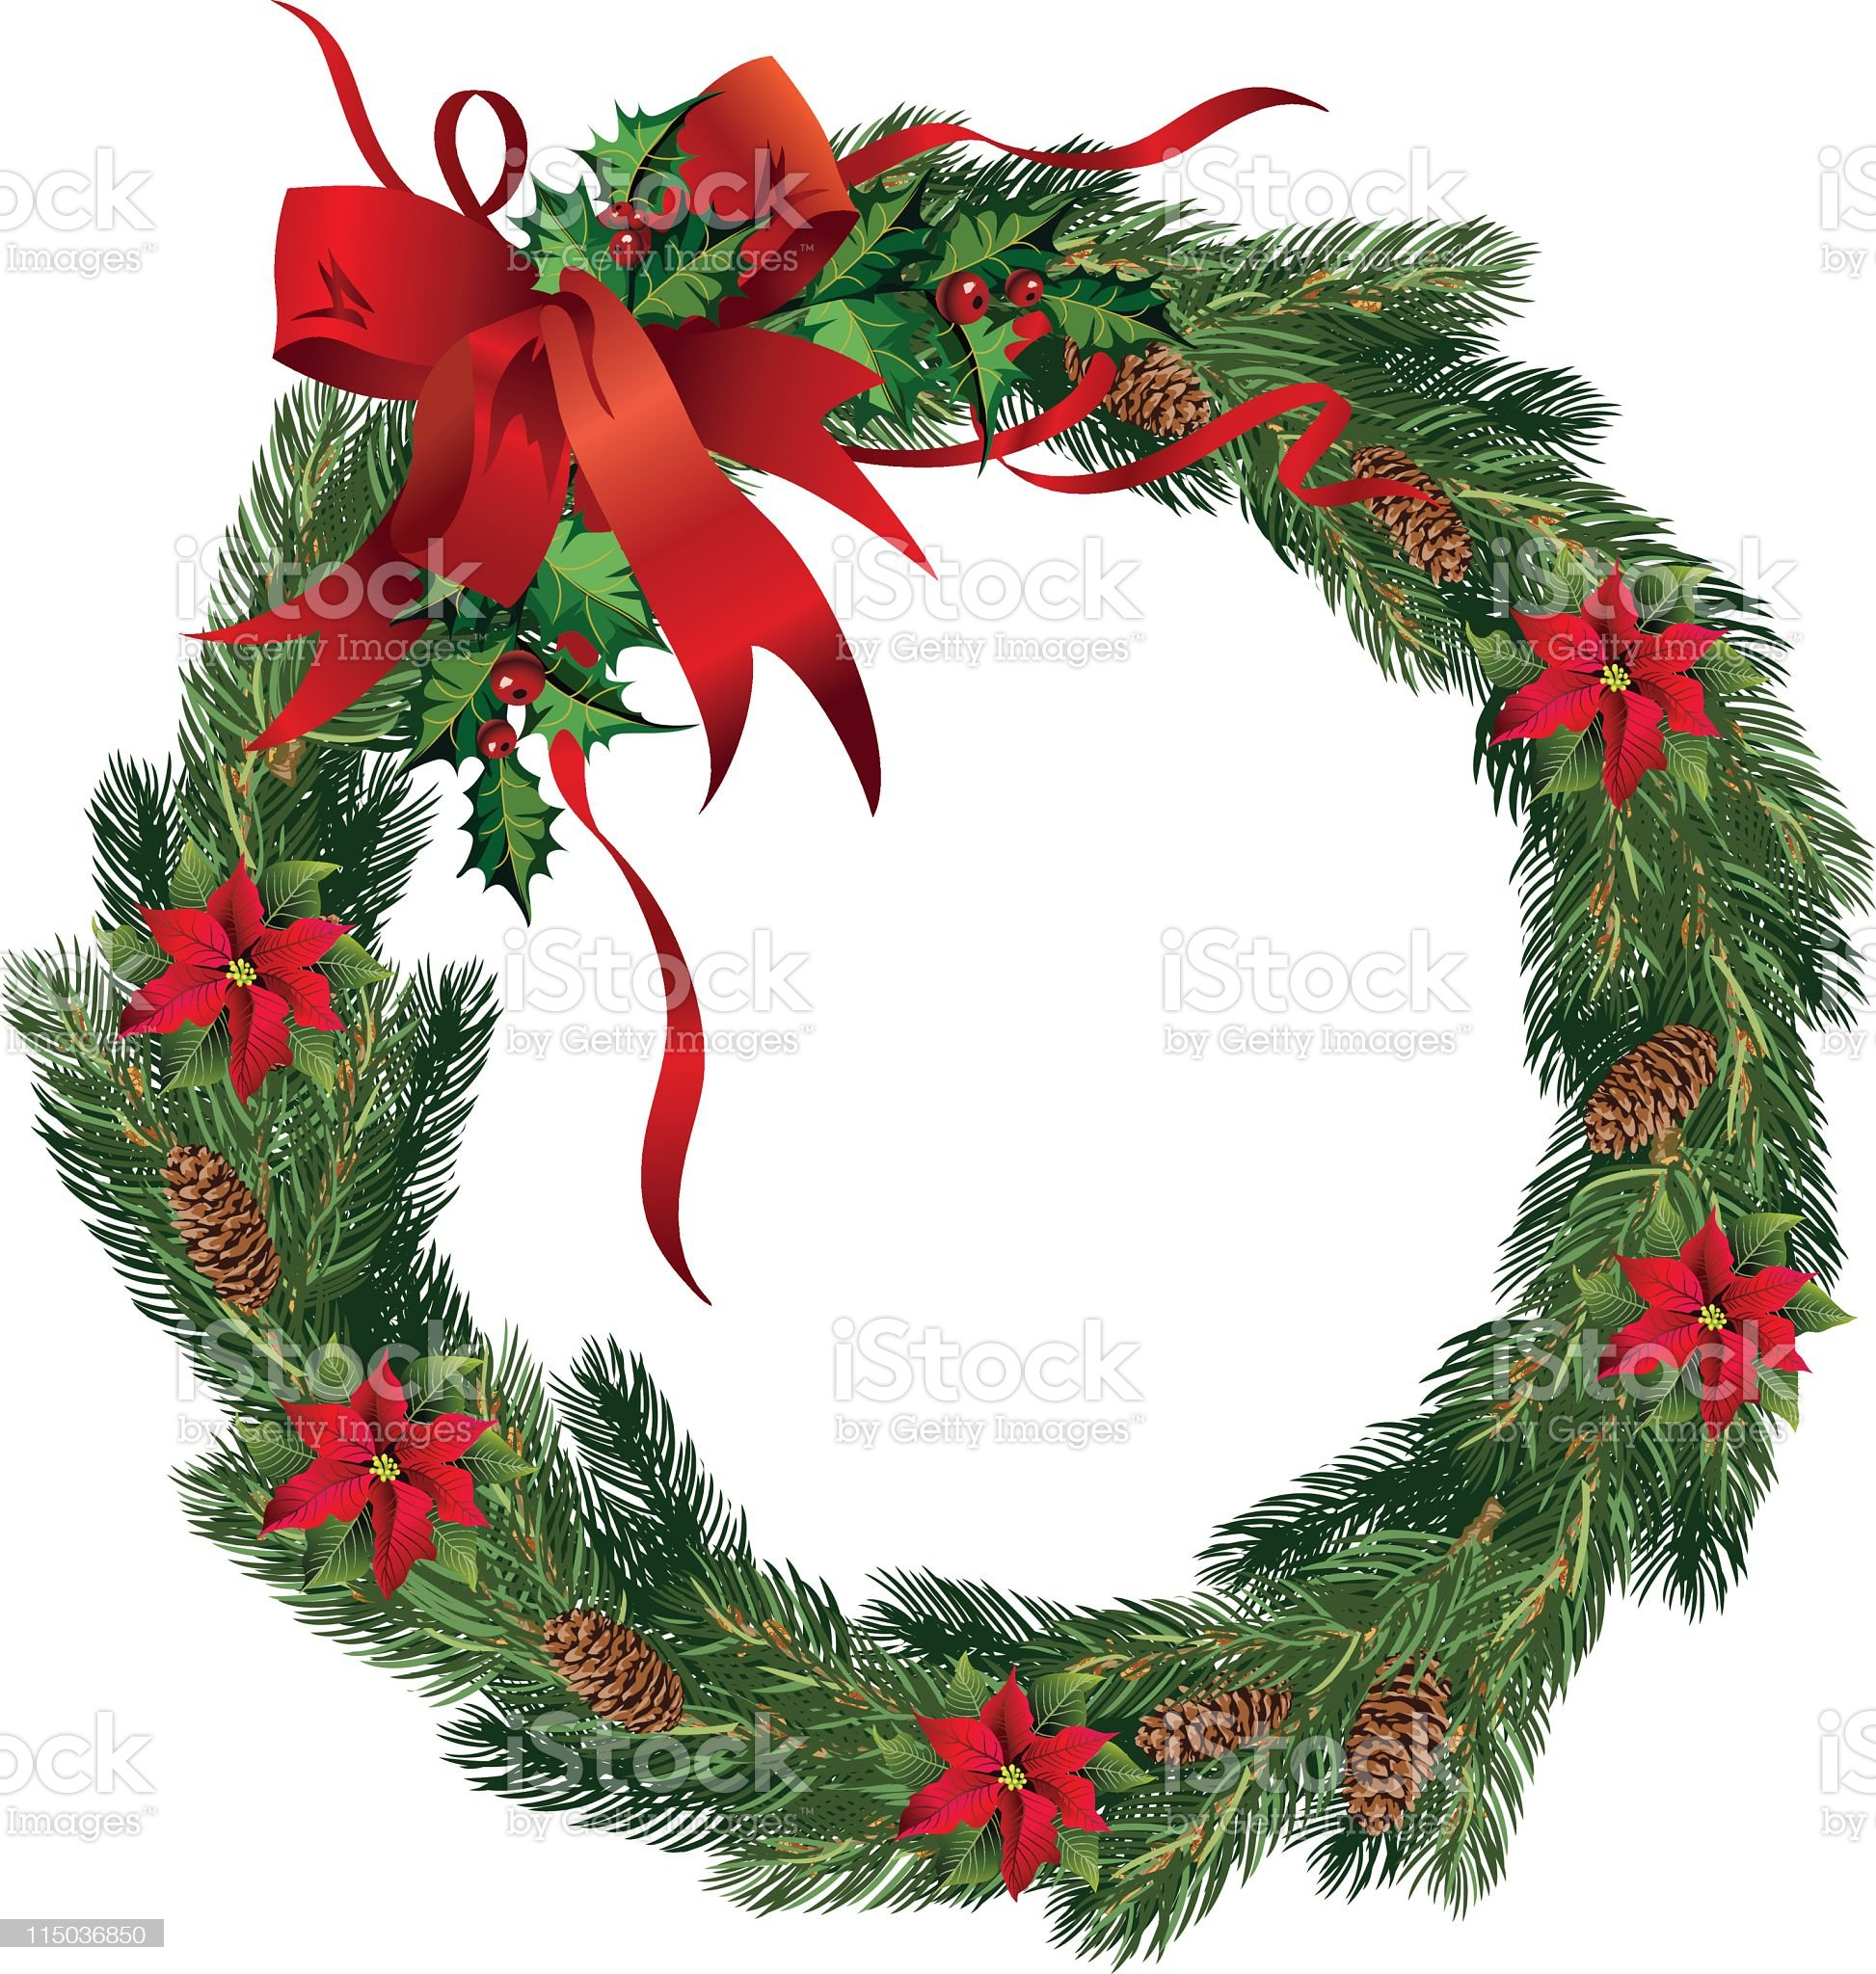 Holiday Wreath royalty-free stock vector art